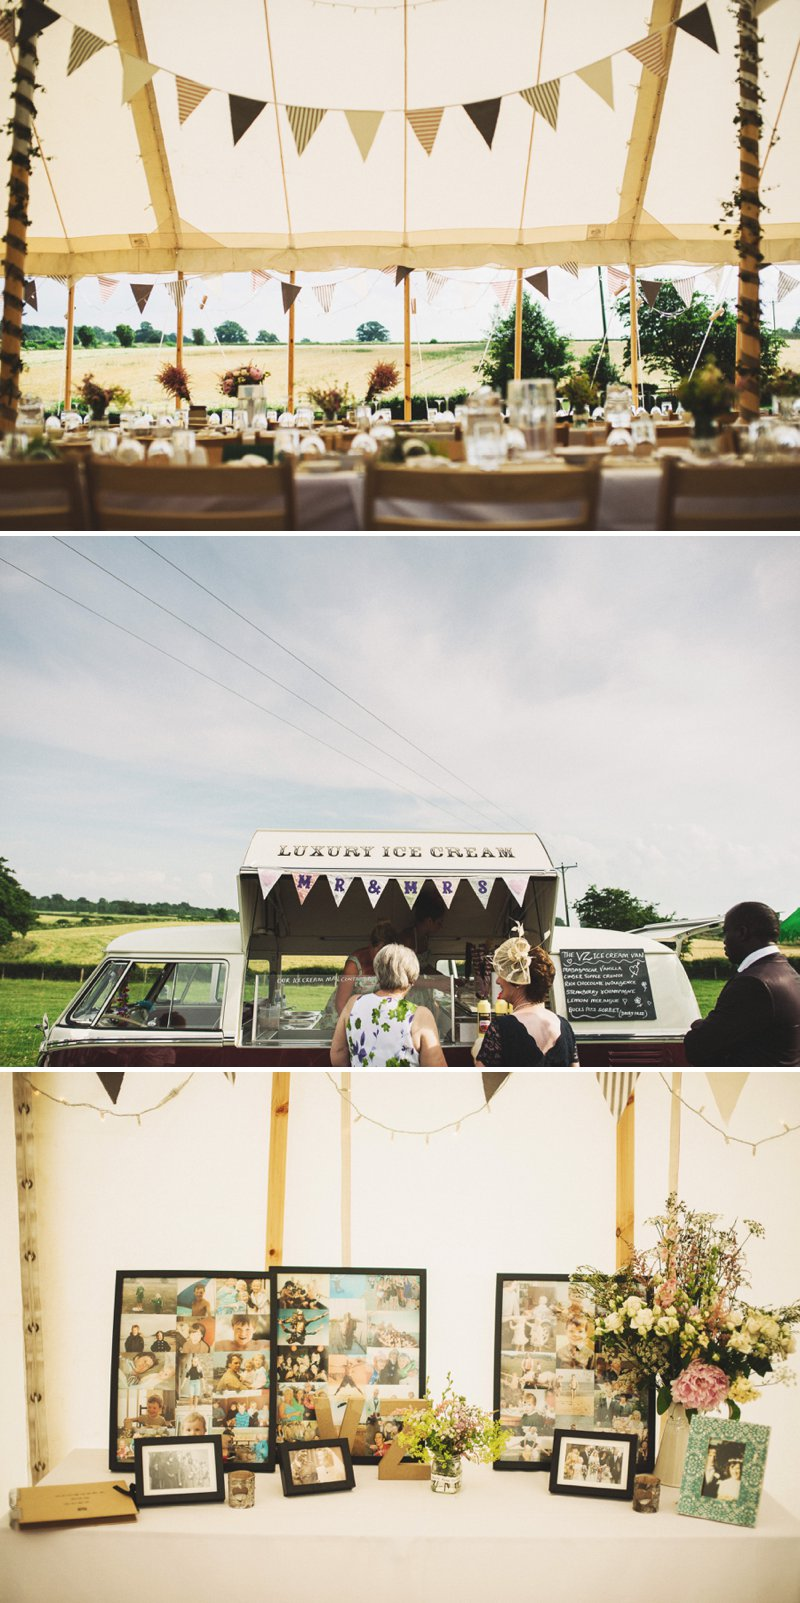 Rustic Marquee Wedding At Mallard Grange In Yorkshire With A Dusty Pink, Cream And Grey Colour Scheme With Bride In Gown From Eternity Bridal With A Vintage VW Camper Van 6